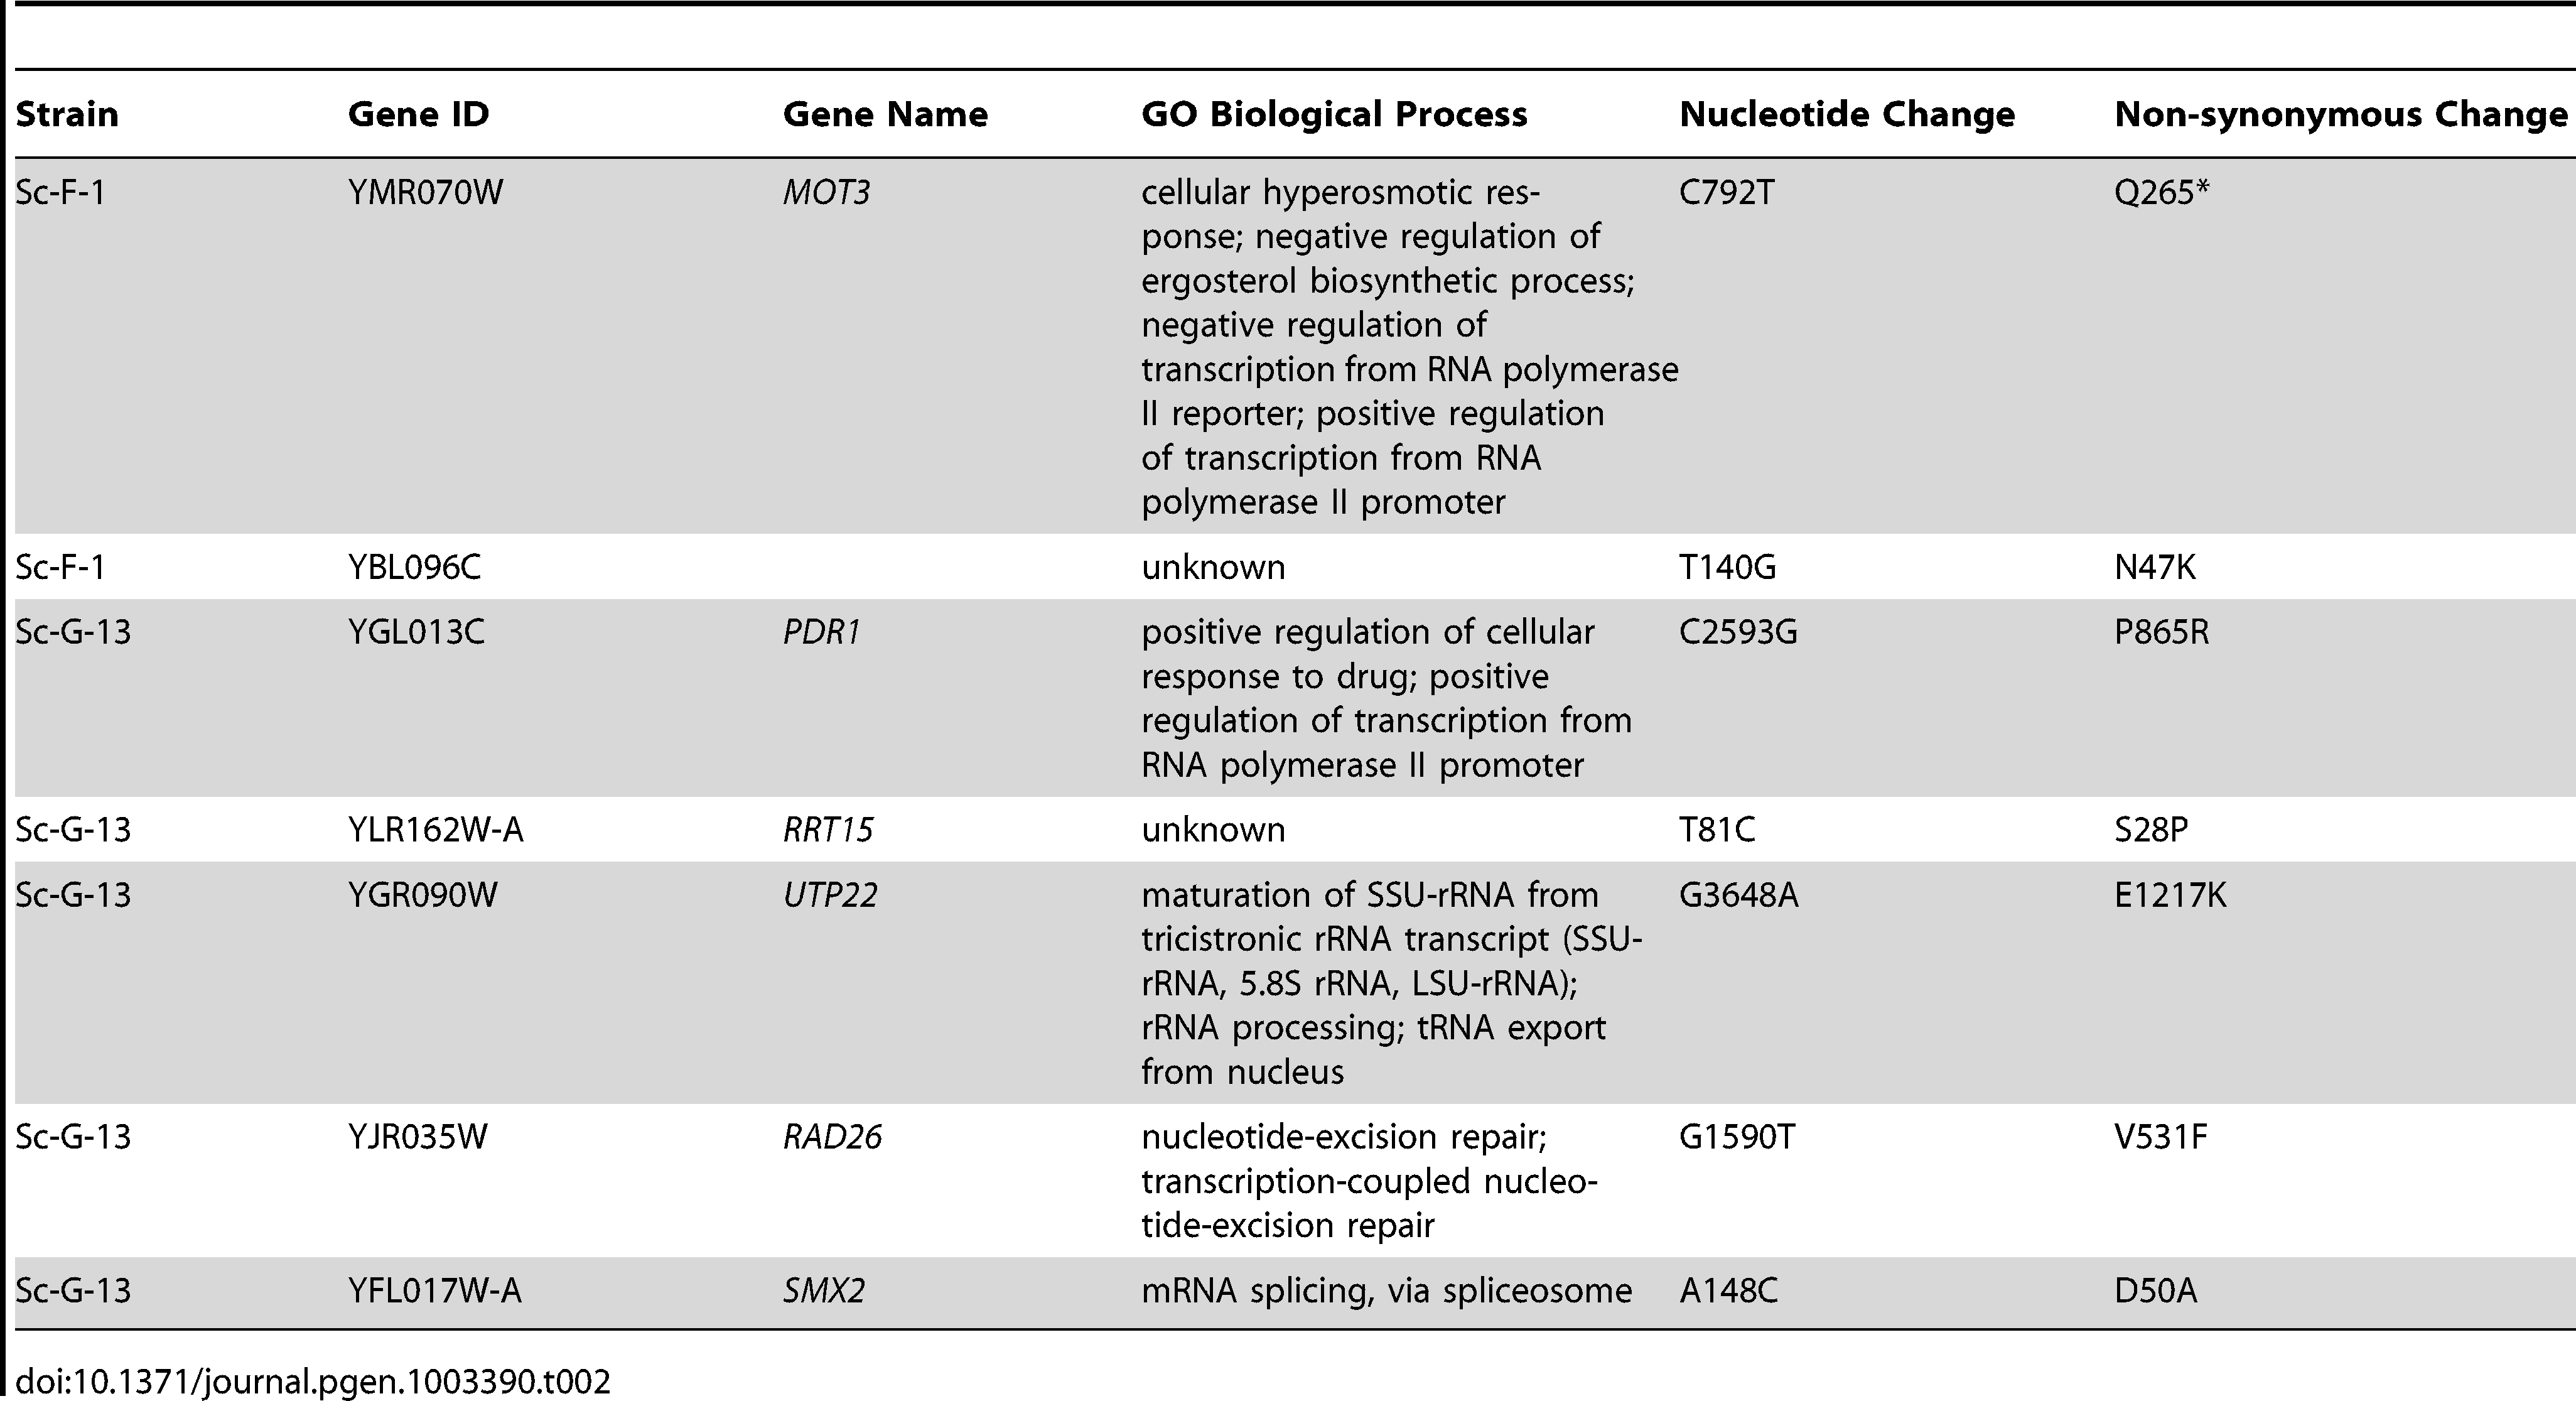 Non-synonymous <i>S. cerevisiae</i> single nucleotide variants.